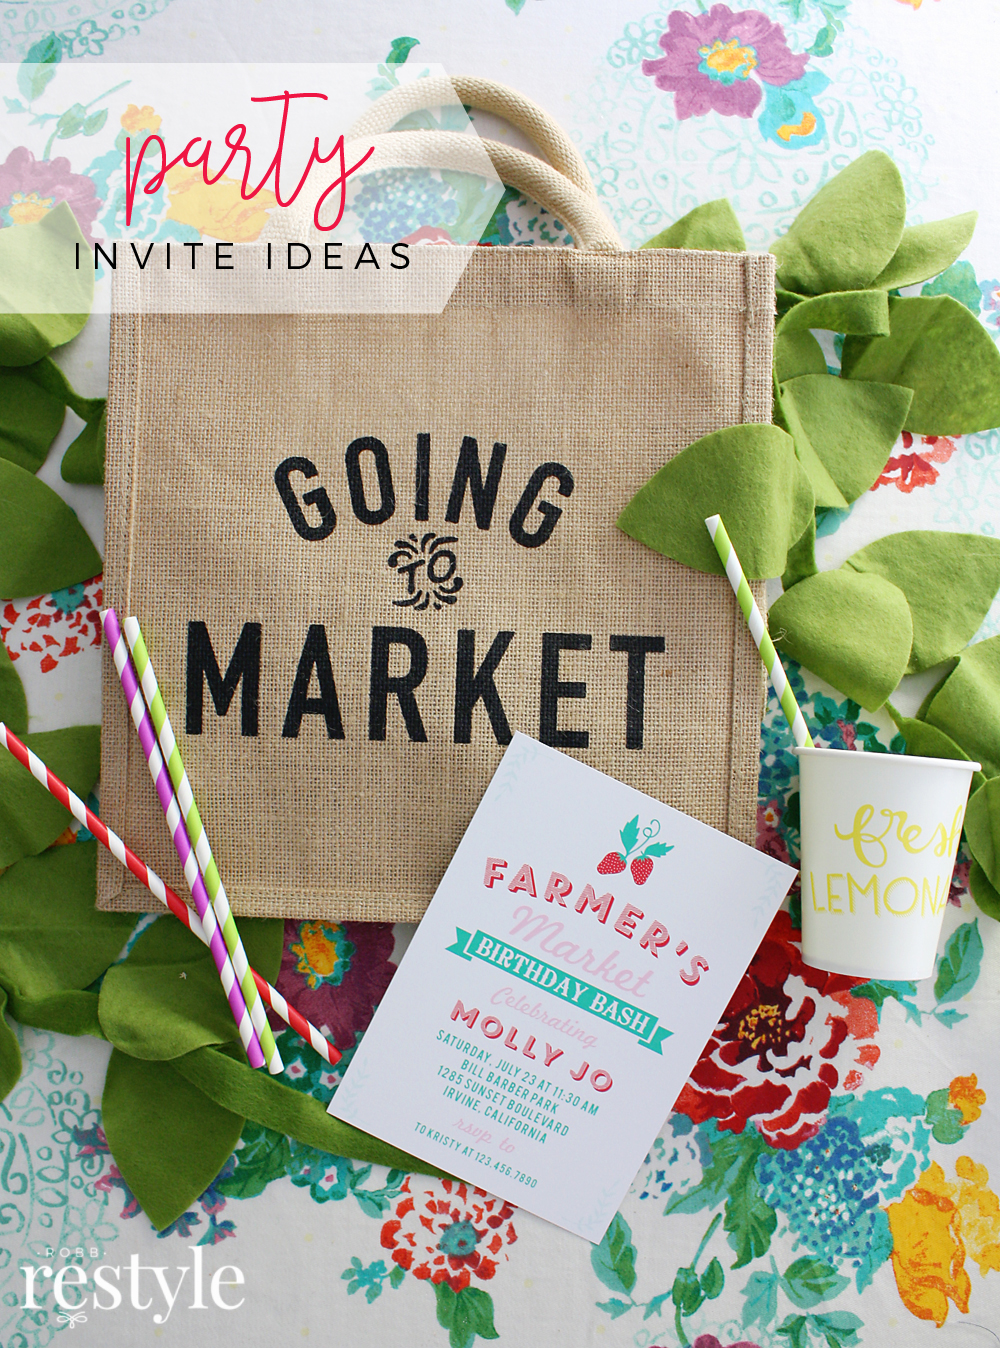 Best Custom Party Invitations - Farmers Market